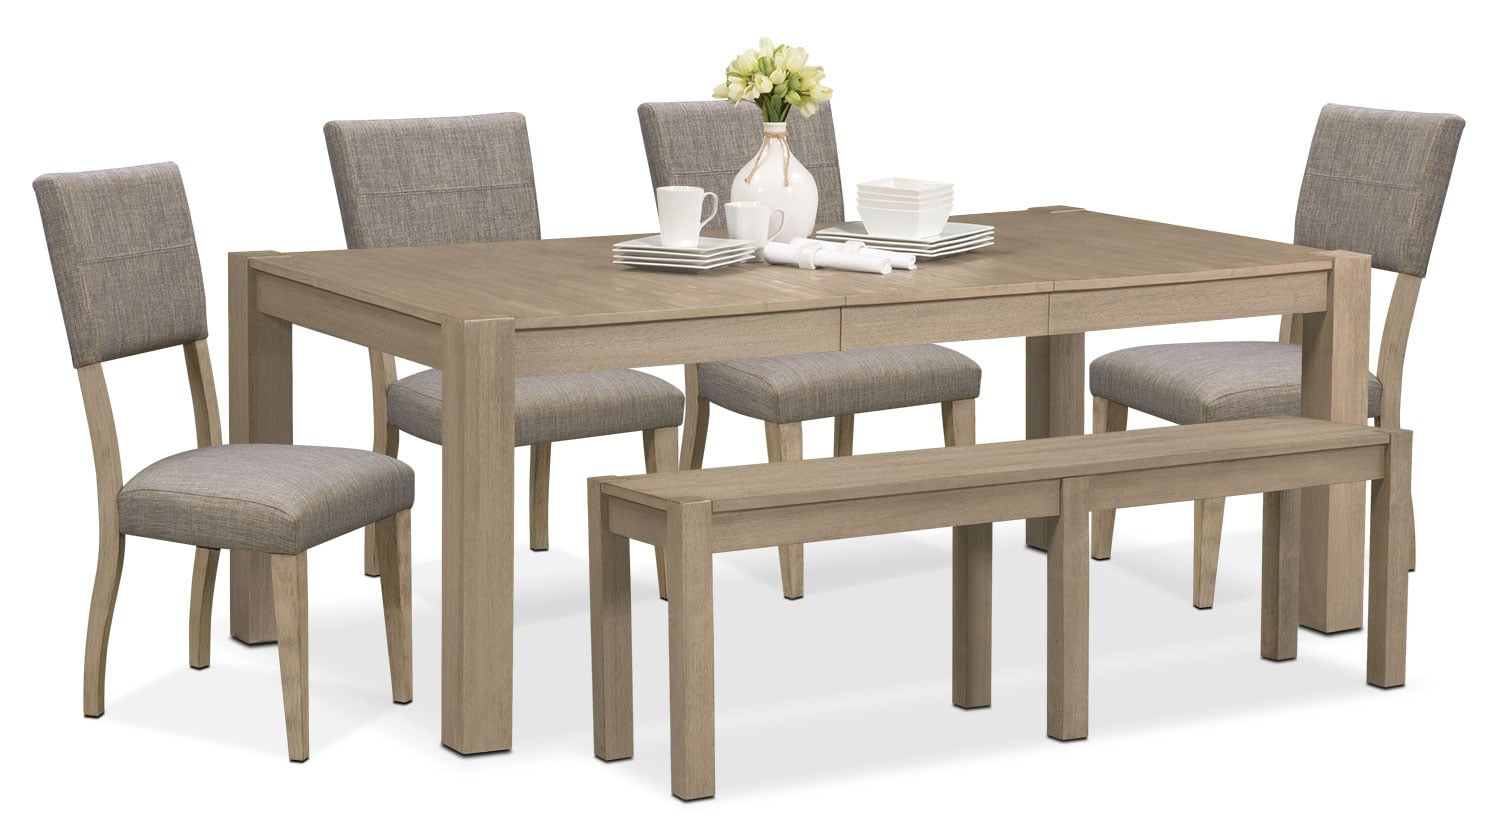 Tribeca Table 4 Upholstered Side Chairs And Bench Gray American Signatur